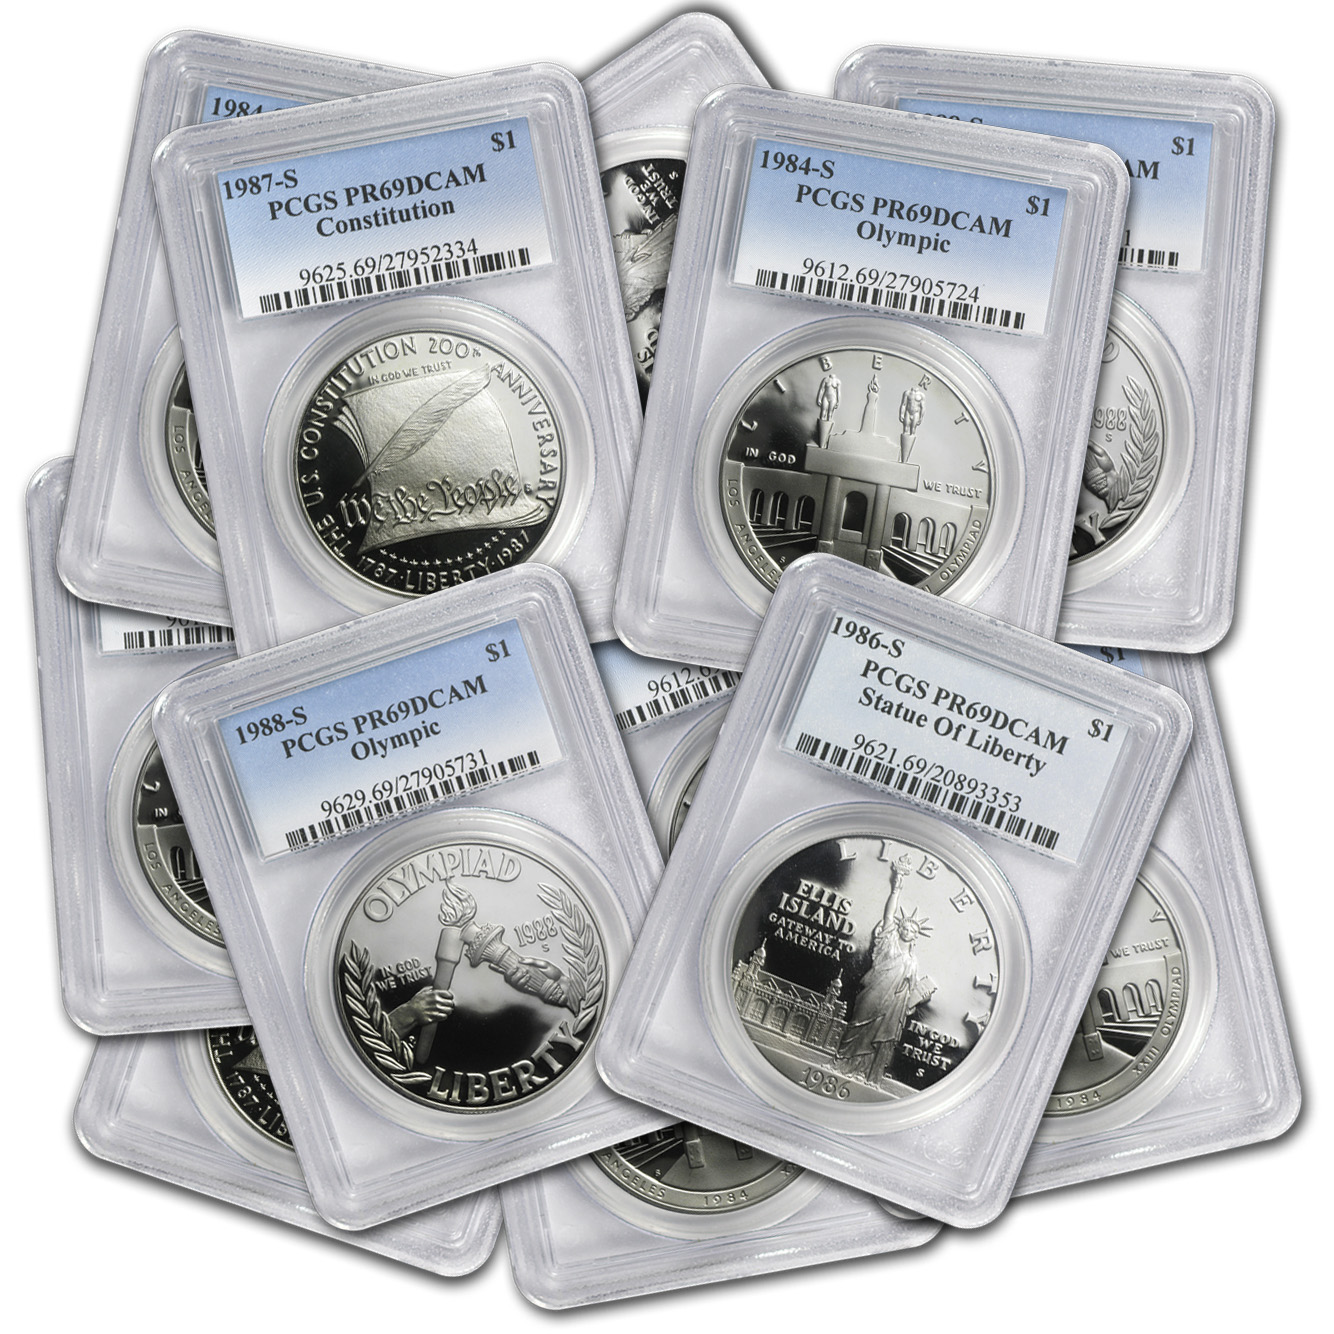 U.S. Mint $1 Silver Commemorative MS/PR-69 DCAM PCGS